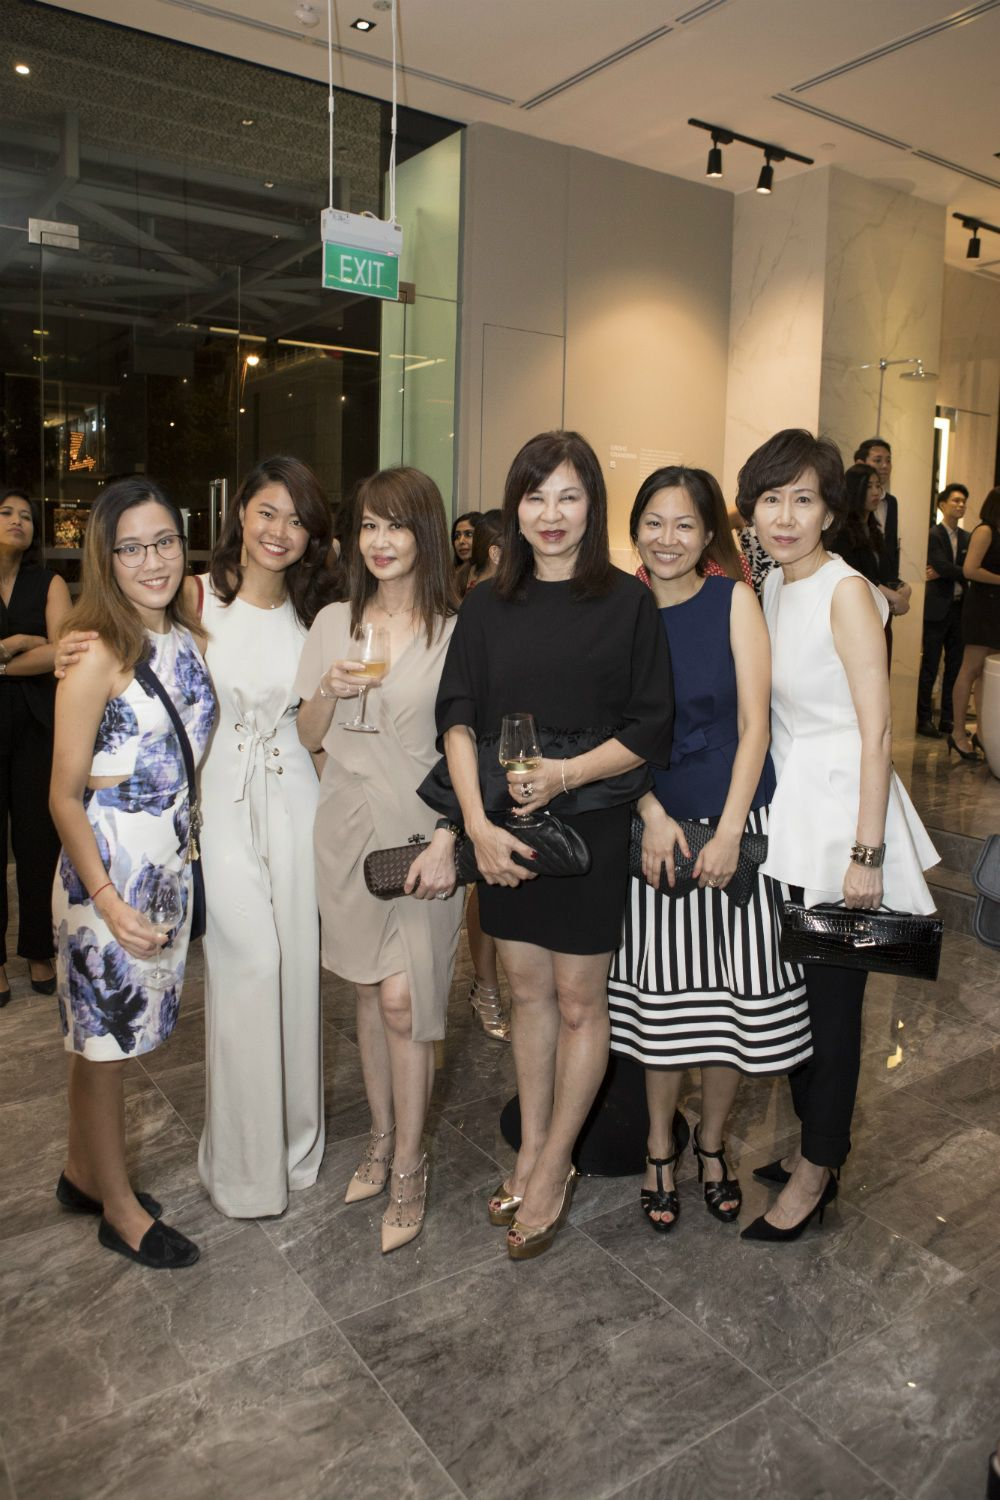 Patricia Cheong, Cheryl Cheong, Evelyn Sam, Violet Yeo, Sonia Ong, Nancy Ong